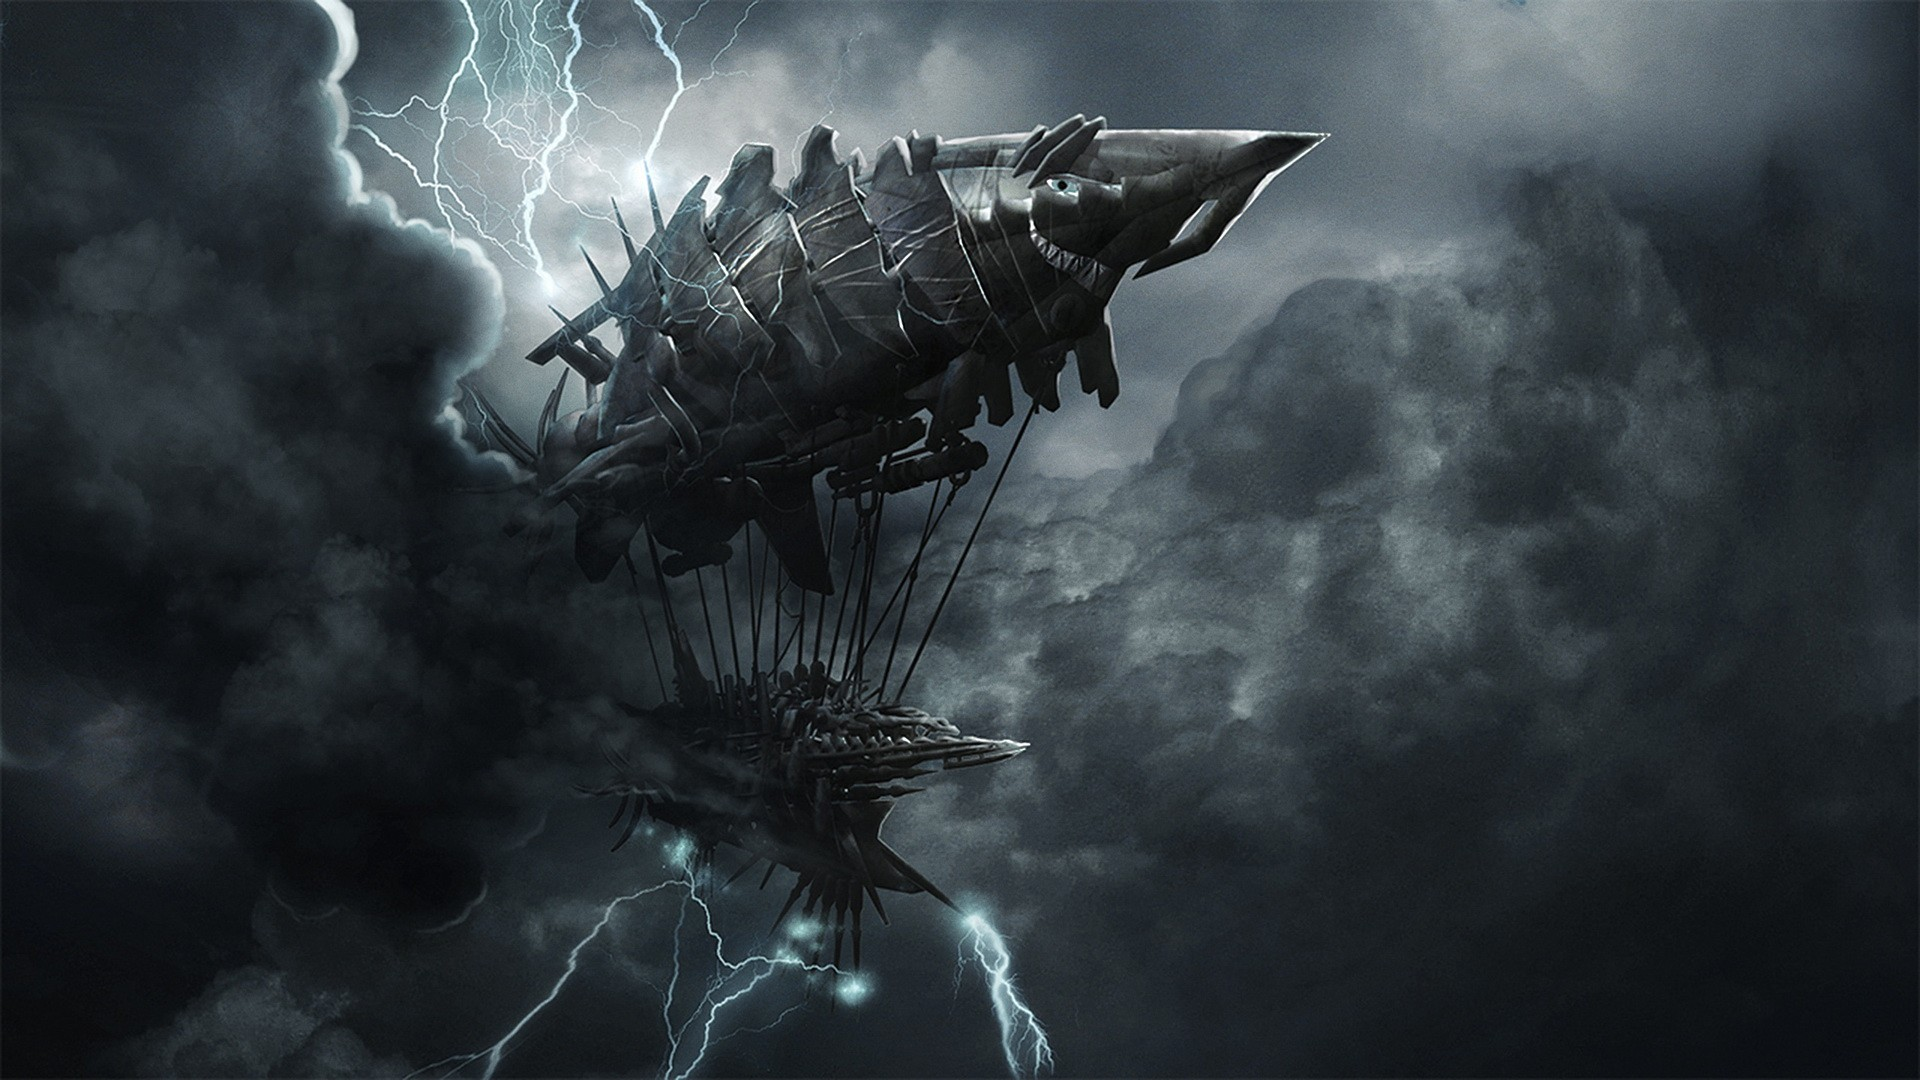 Dark Storm Computer Wallpapers Desktop Backgrounds 1920x1080 ID 1920x1080